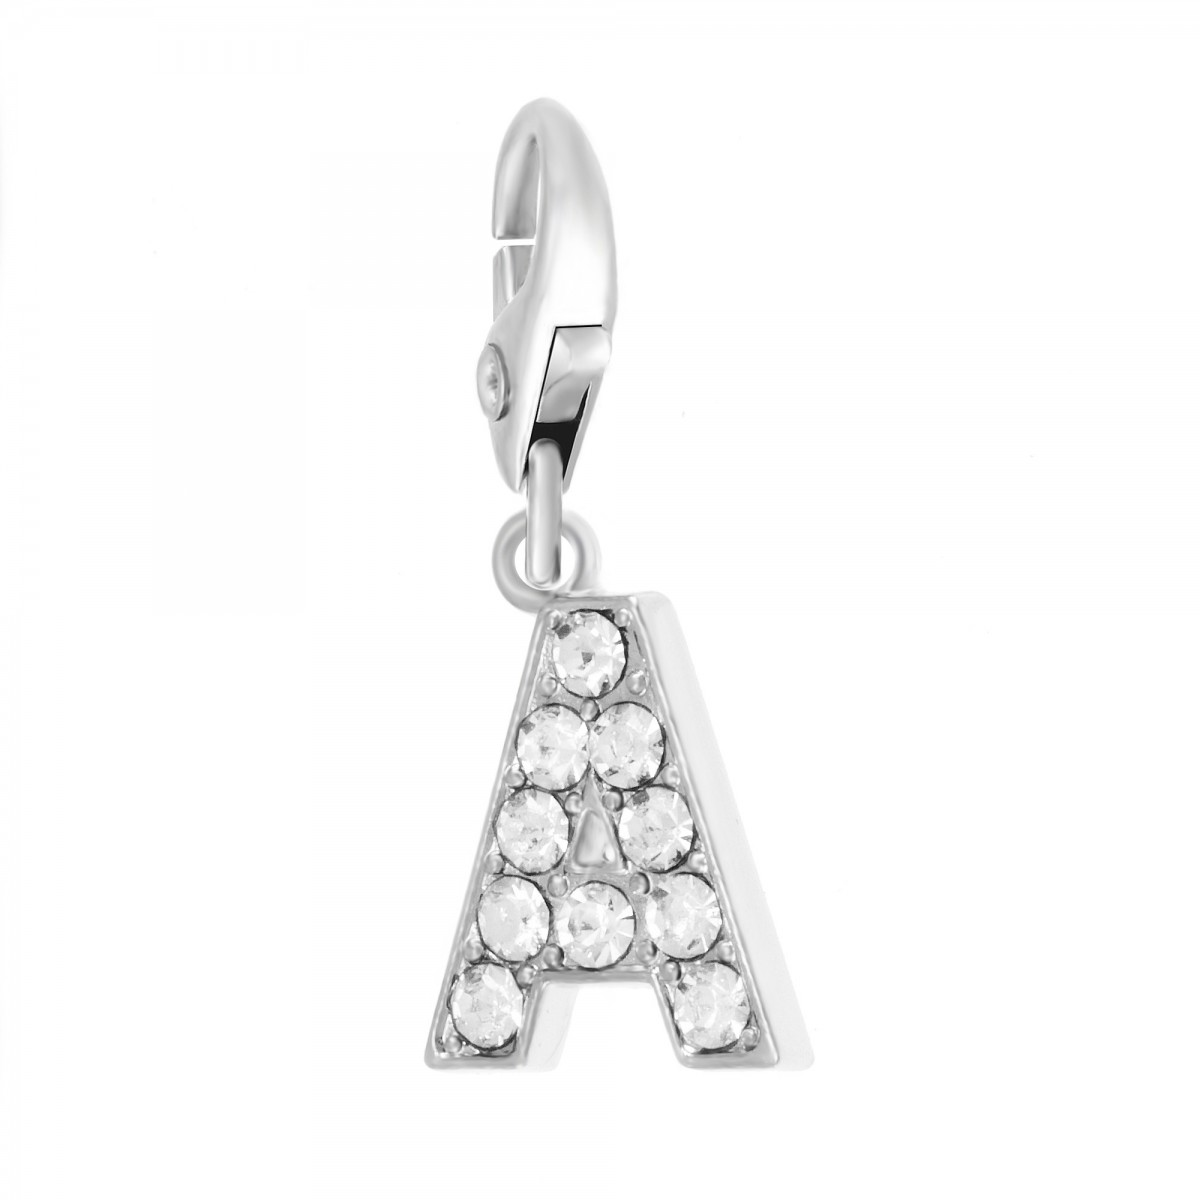 Charm Lettre A So Charm made with Crystal from Swarovski